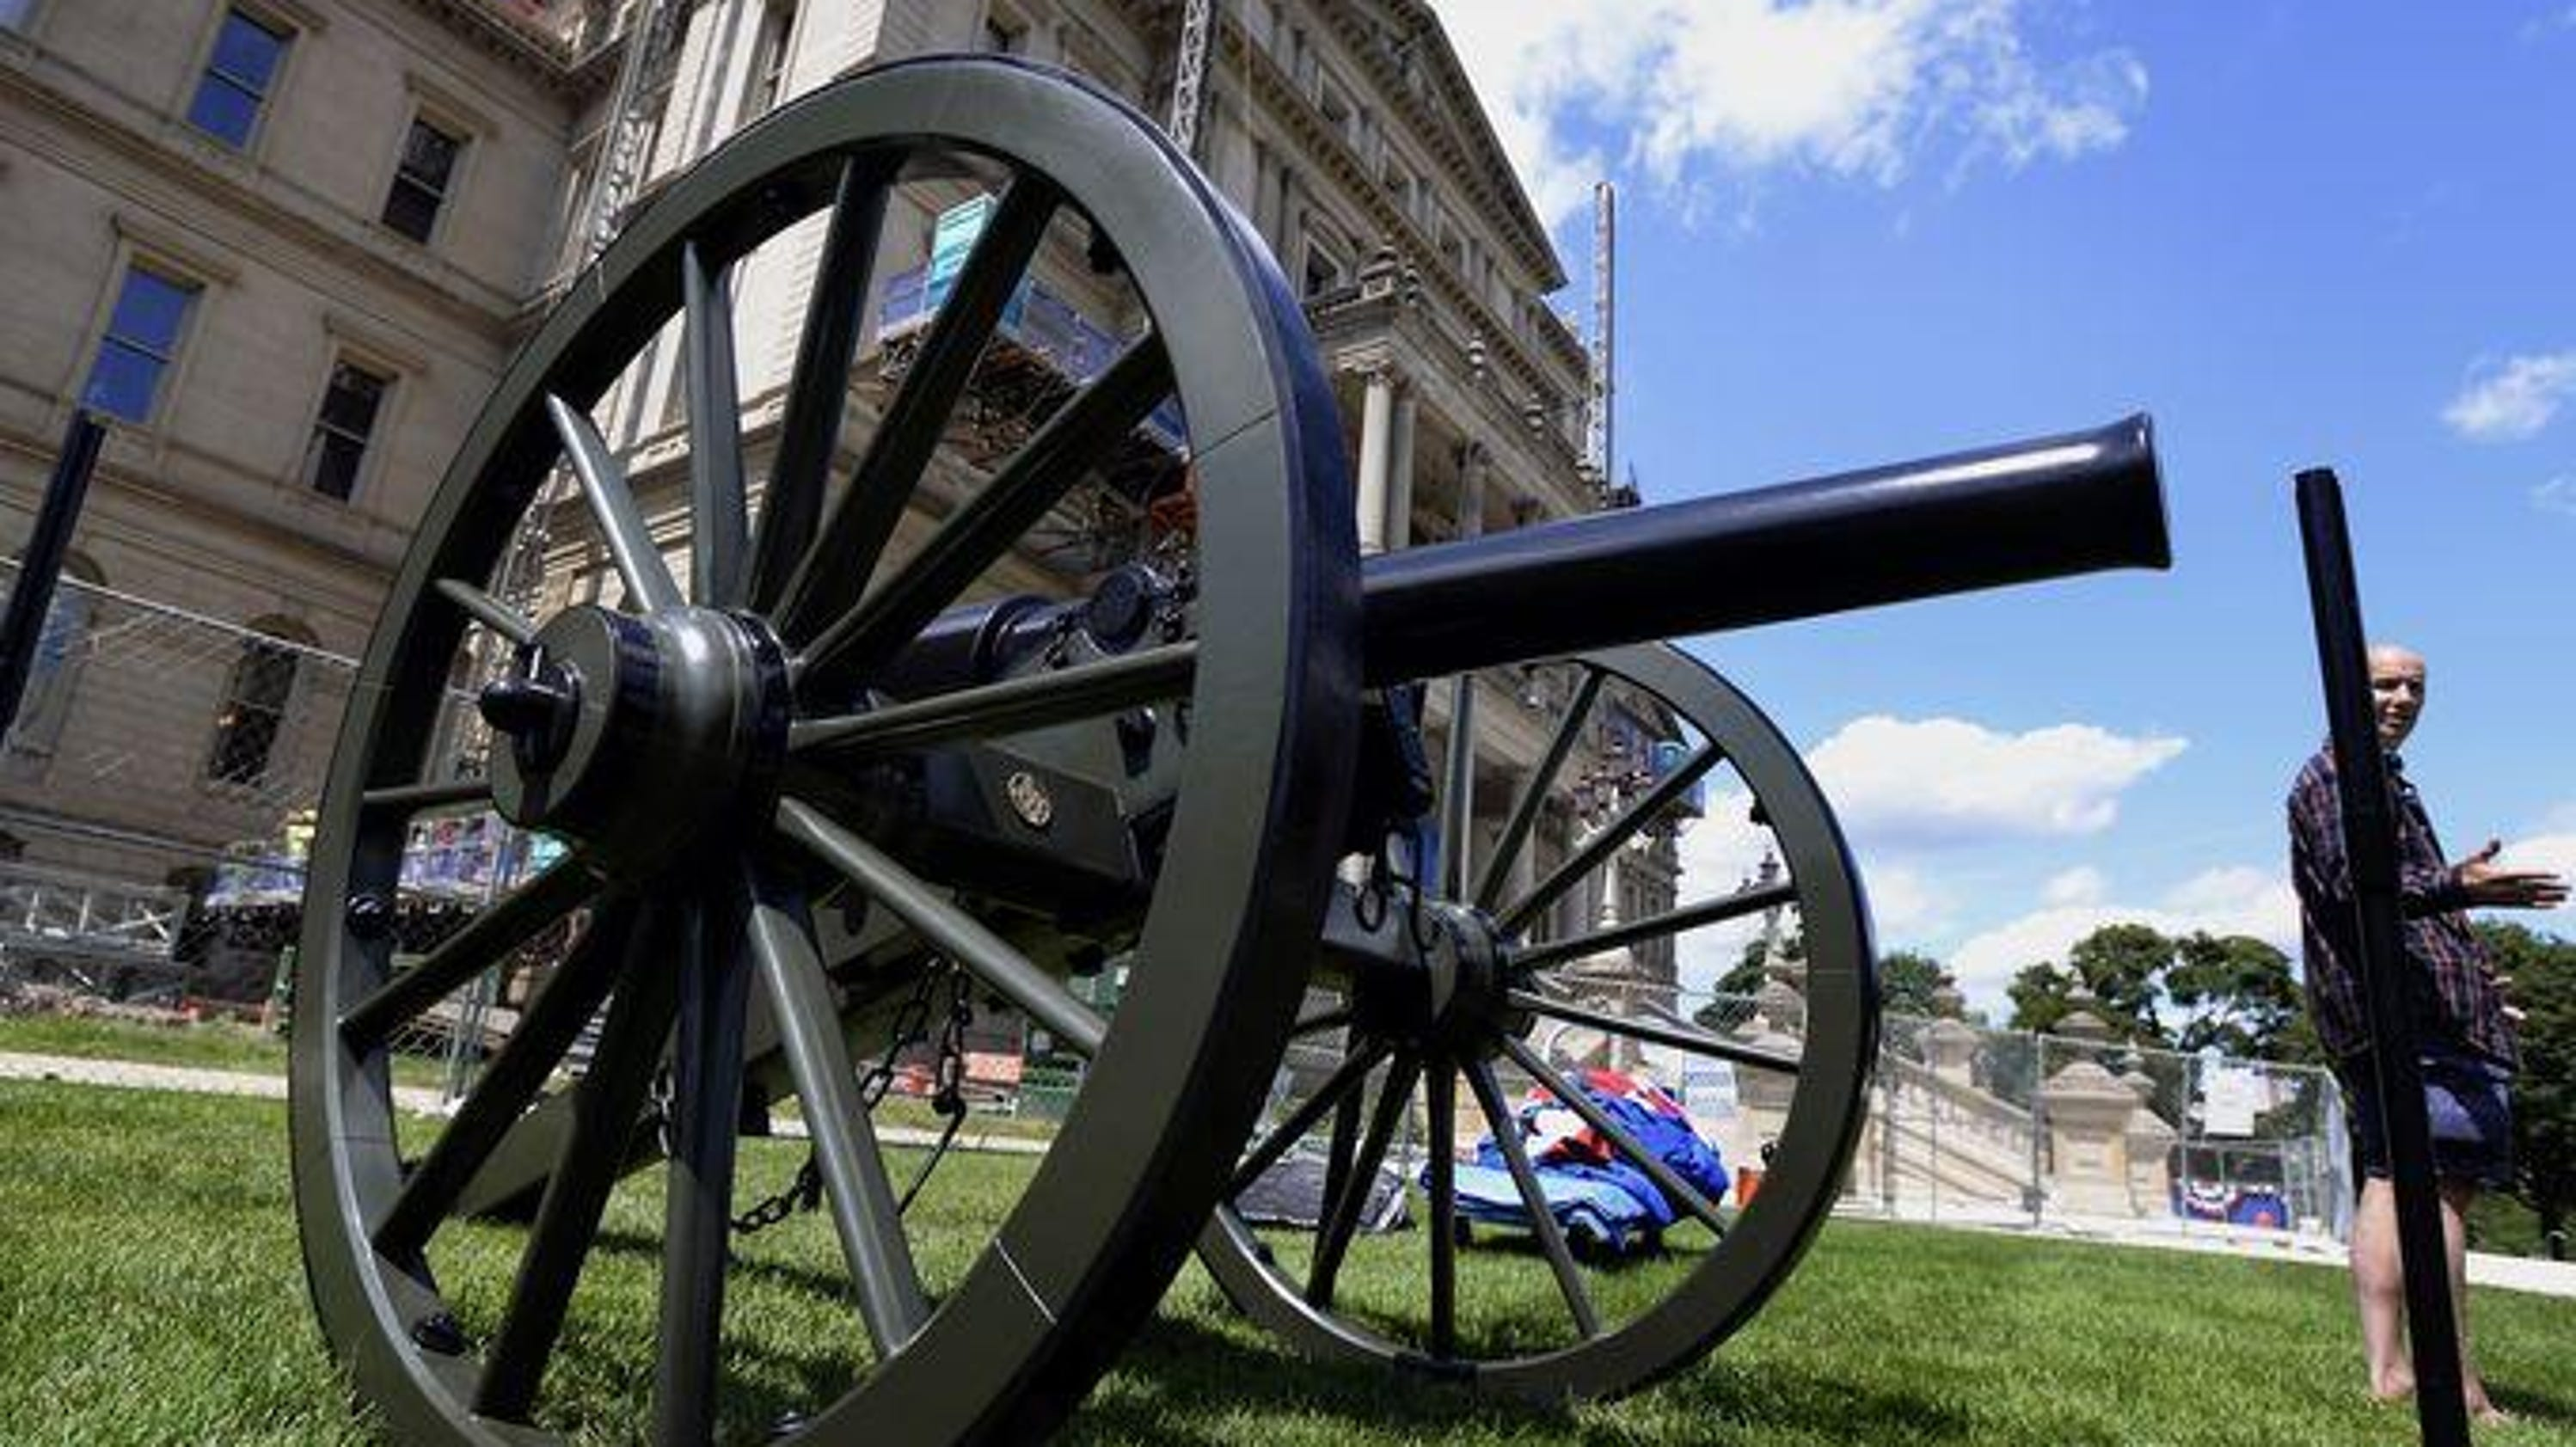 Loomis civil war cannons on michigan capitol lawn